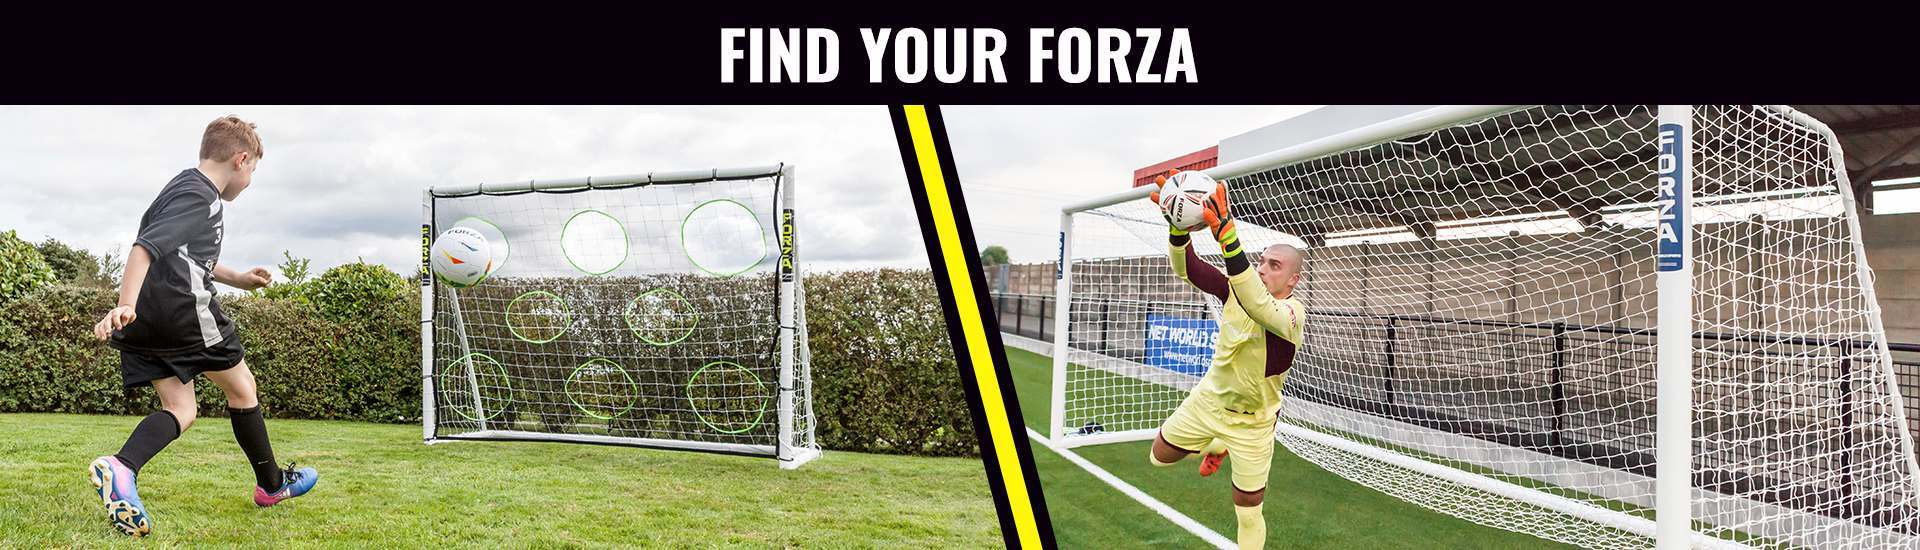 Find Your Forza